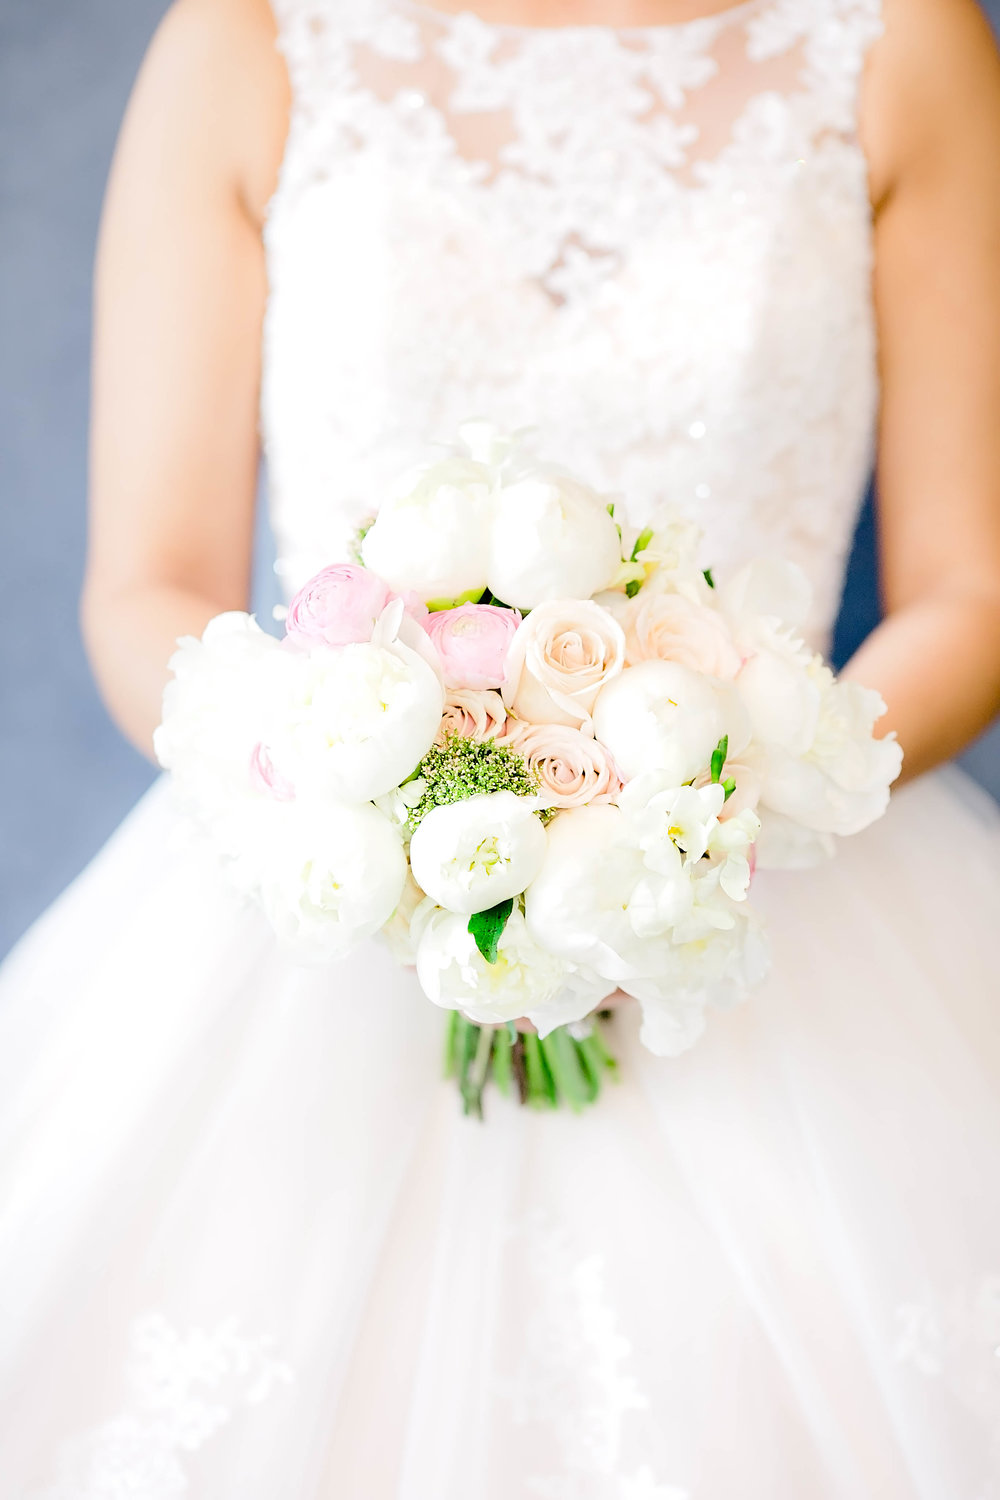 Bridal bouquet, bride